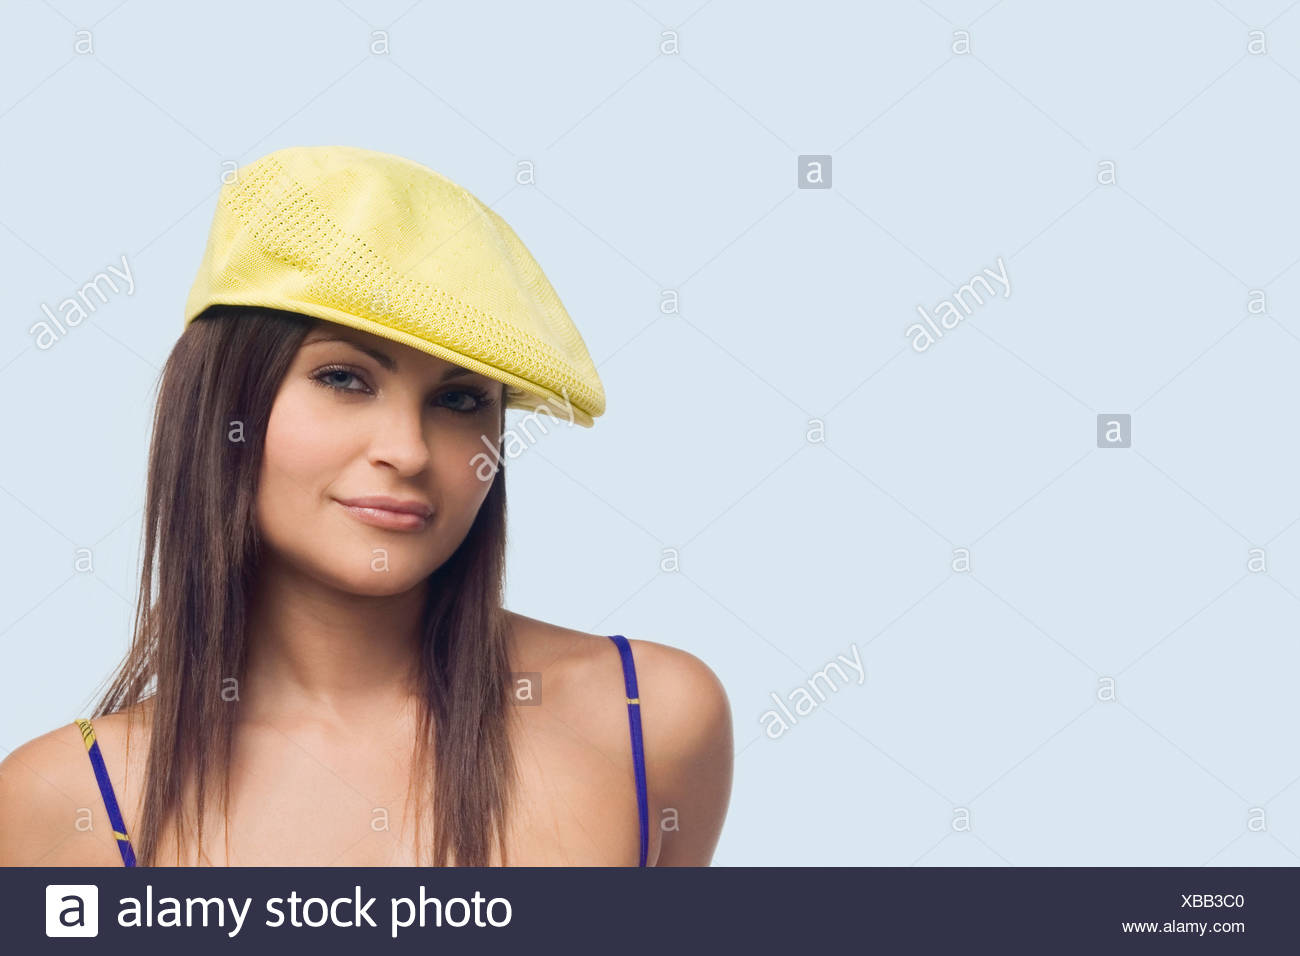 d14ffae5cc3a7 Portrait of a young woman wearing a flat cap and smirking - Stock Image